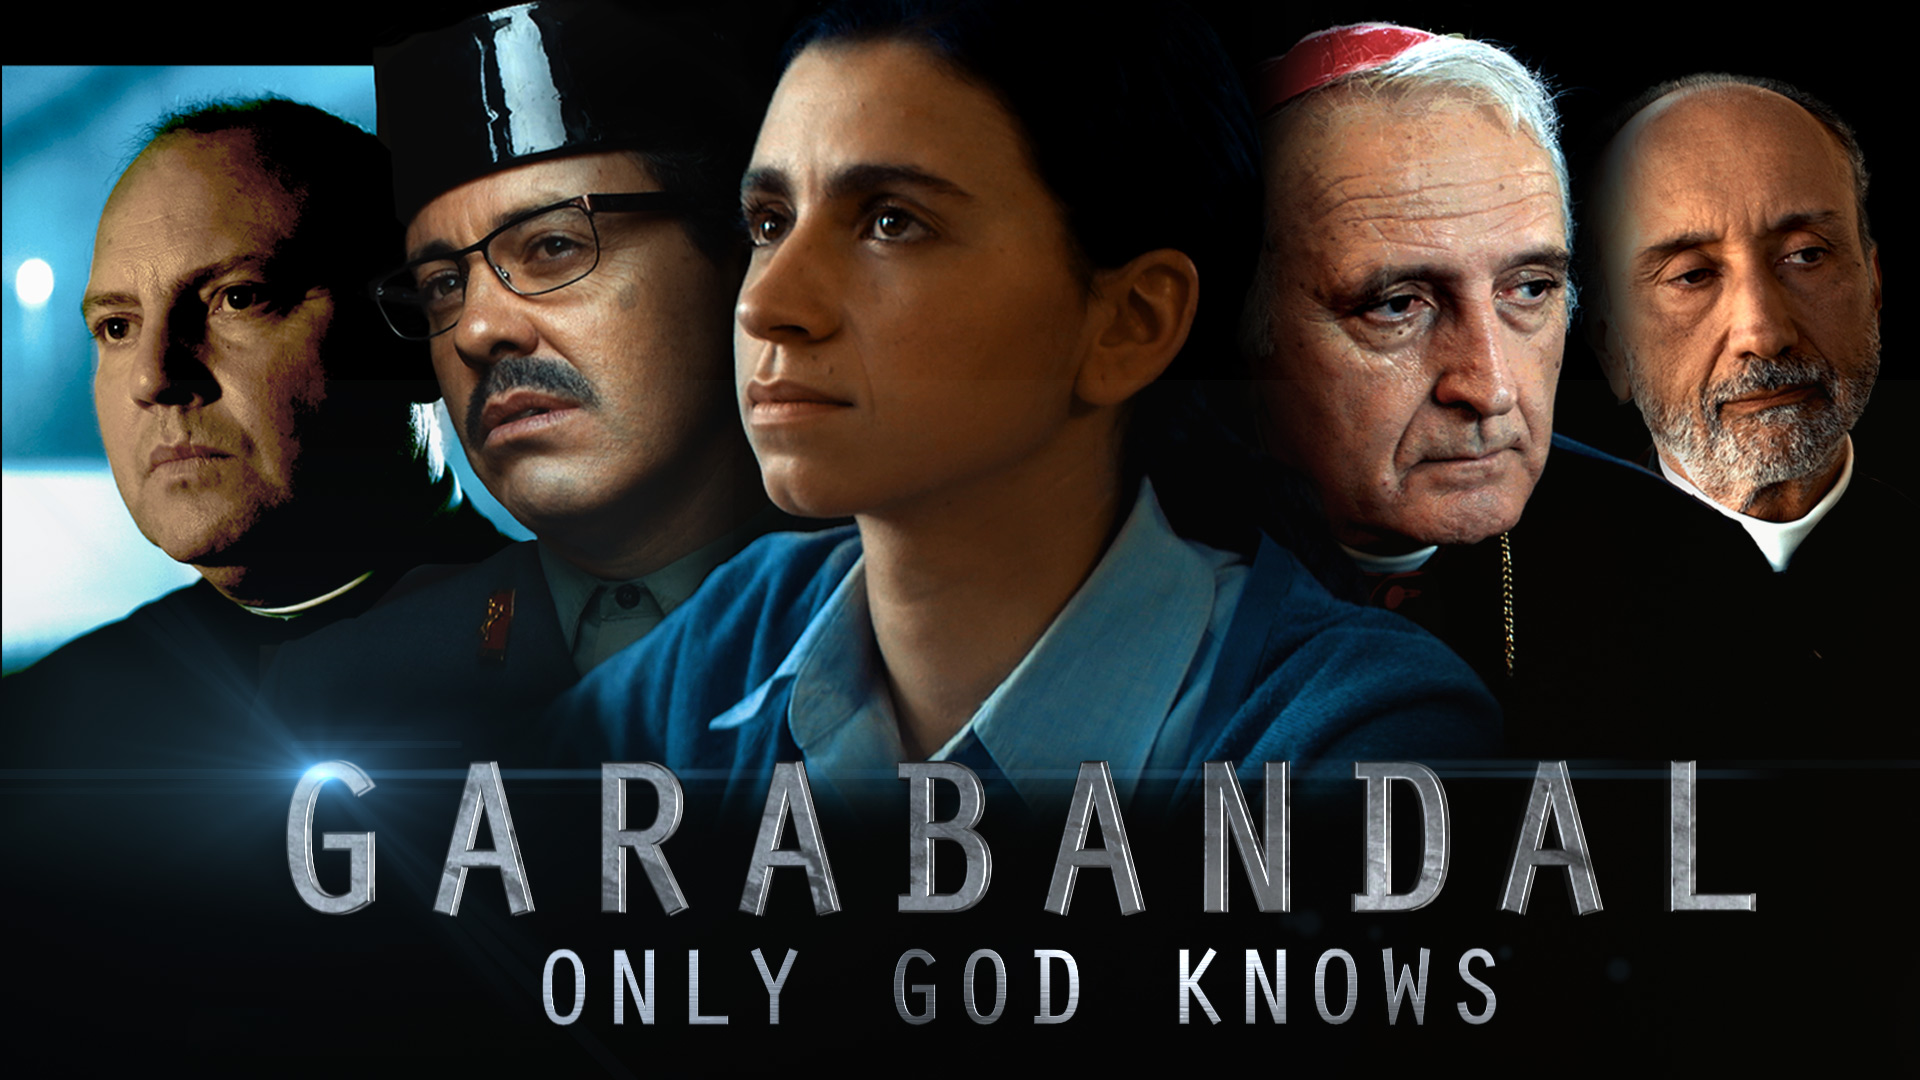 Garabandal, Only God Knows